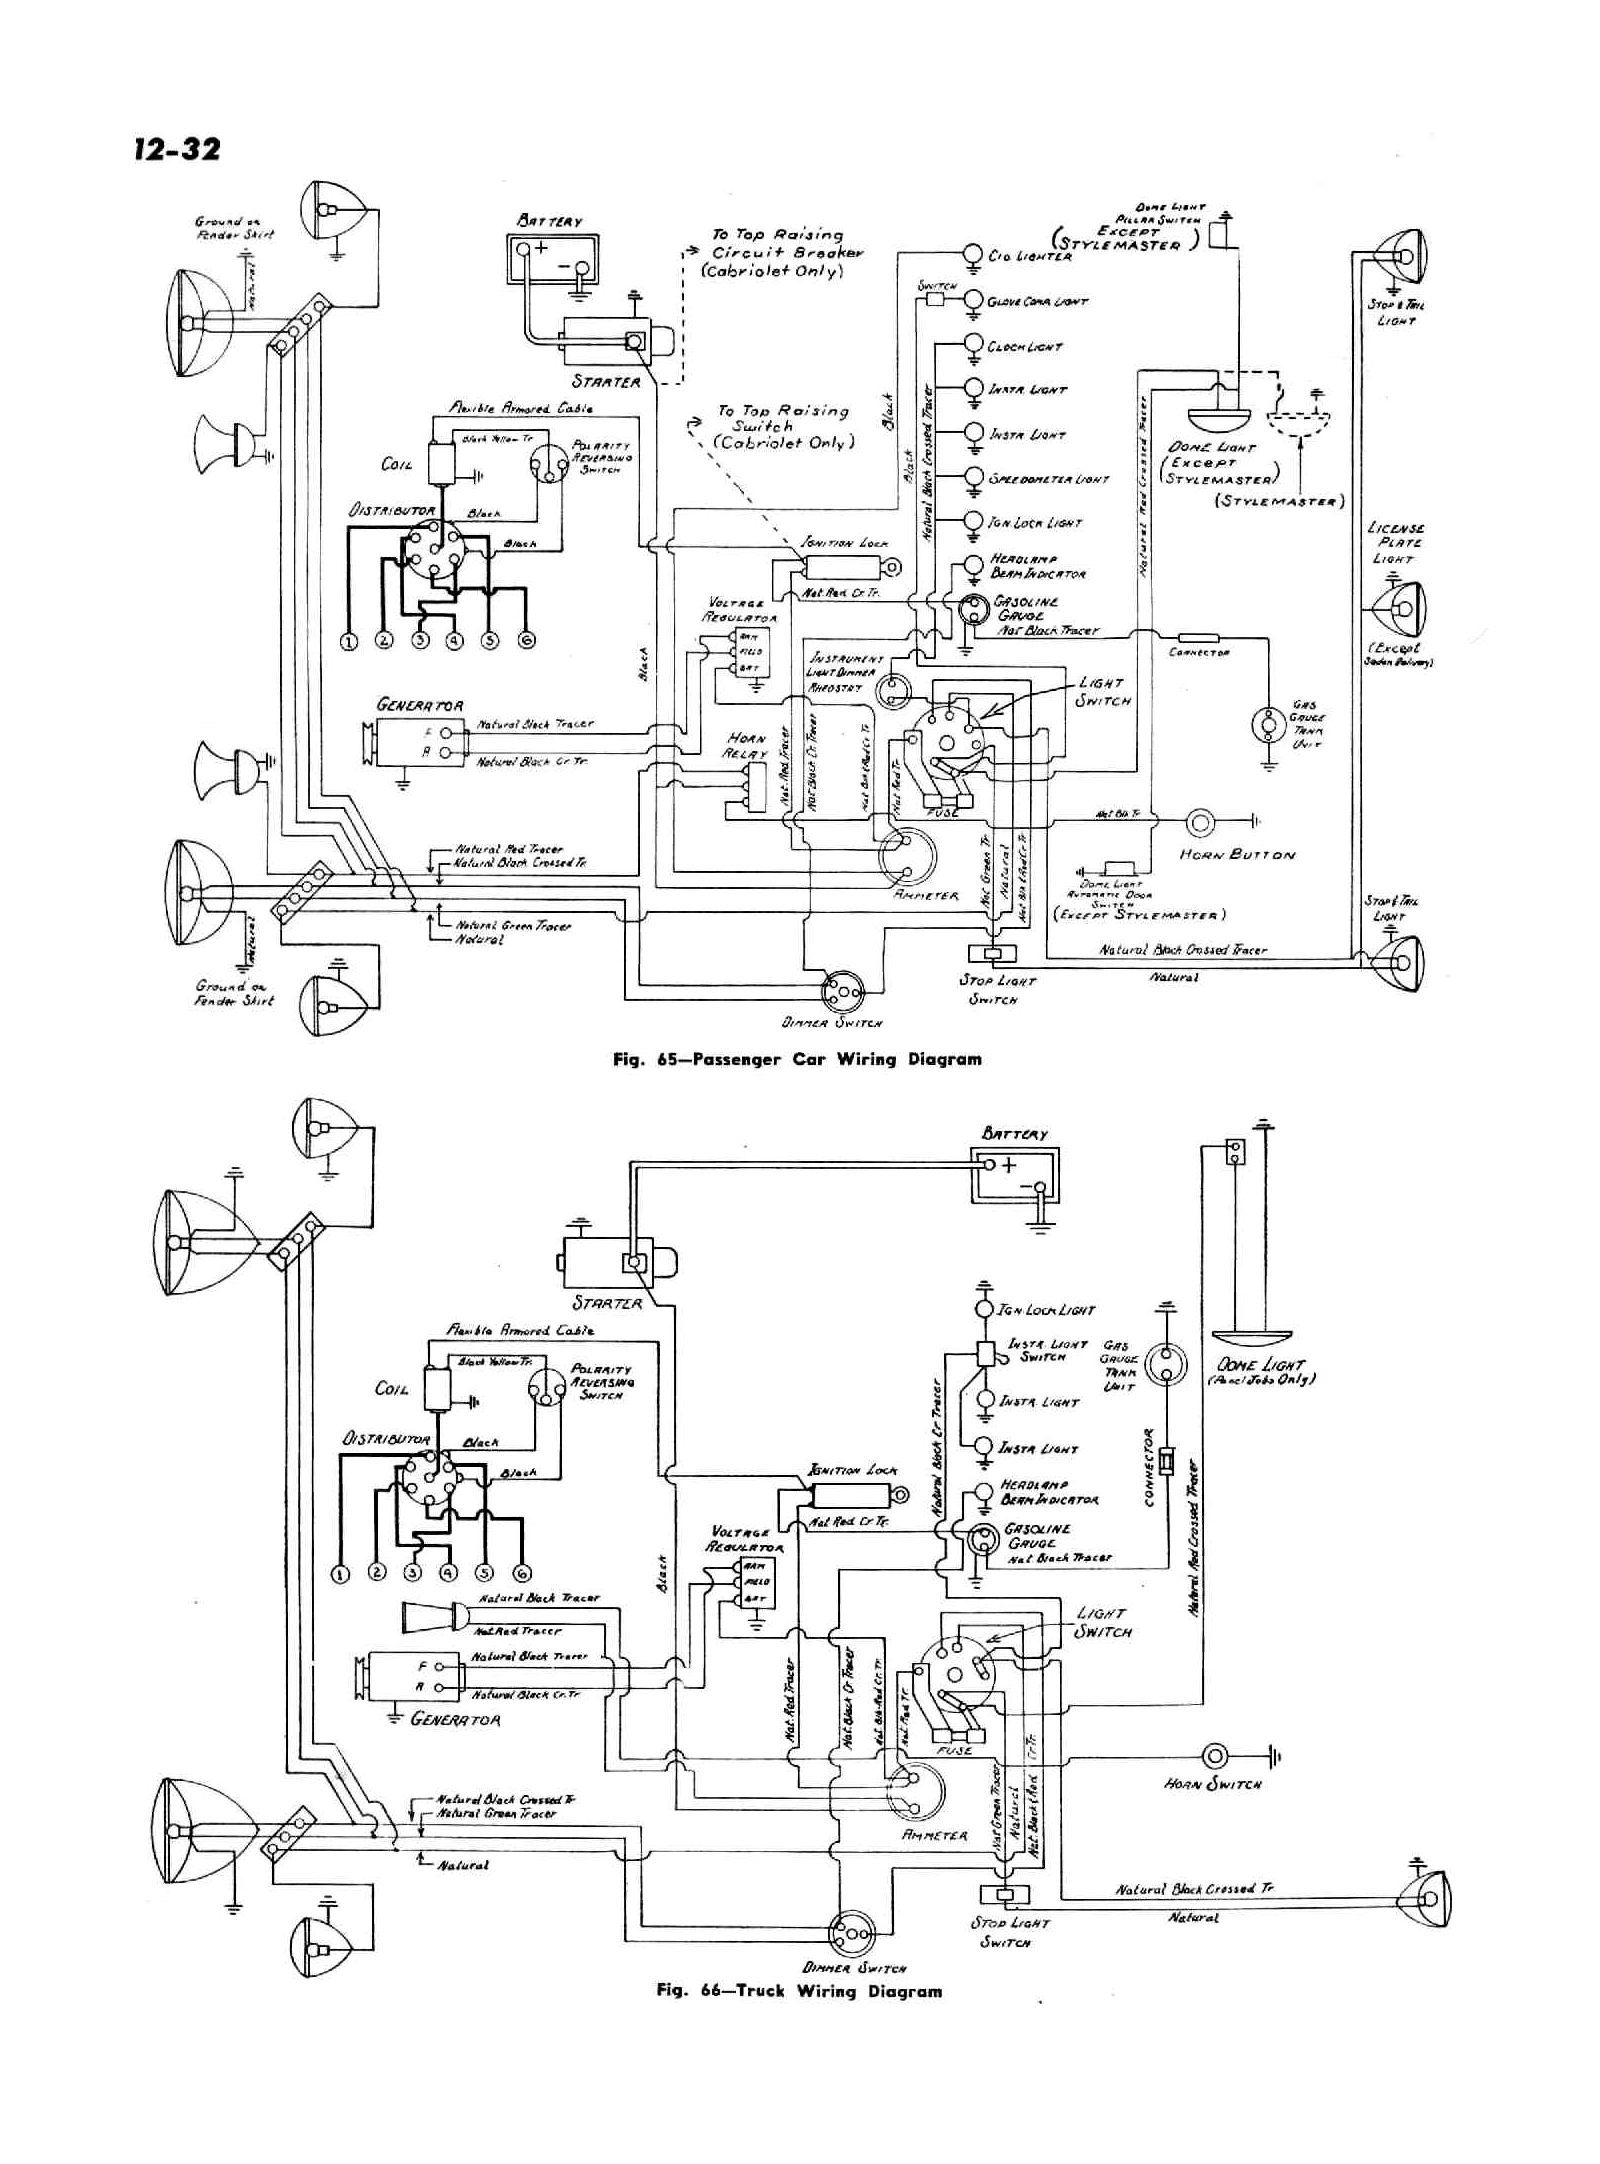 Ignition Wiring Diagram For 2003 Alero Envoy Oldsmobile Diagrams 1957 Electrical On 1965